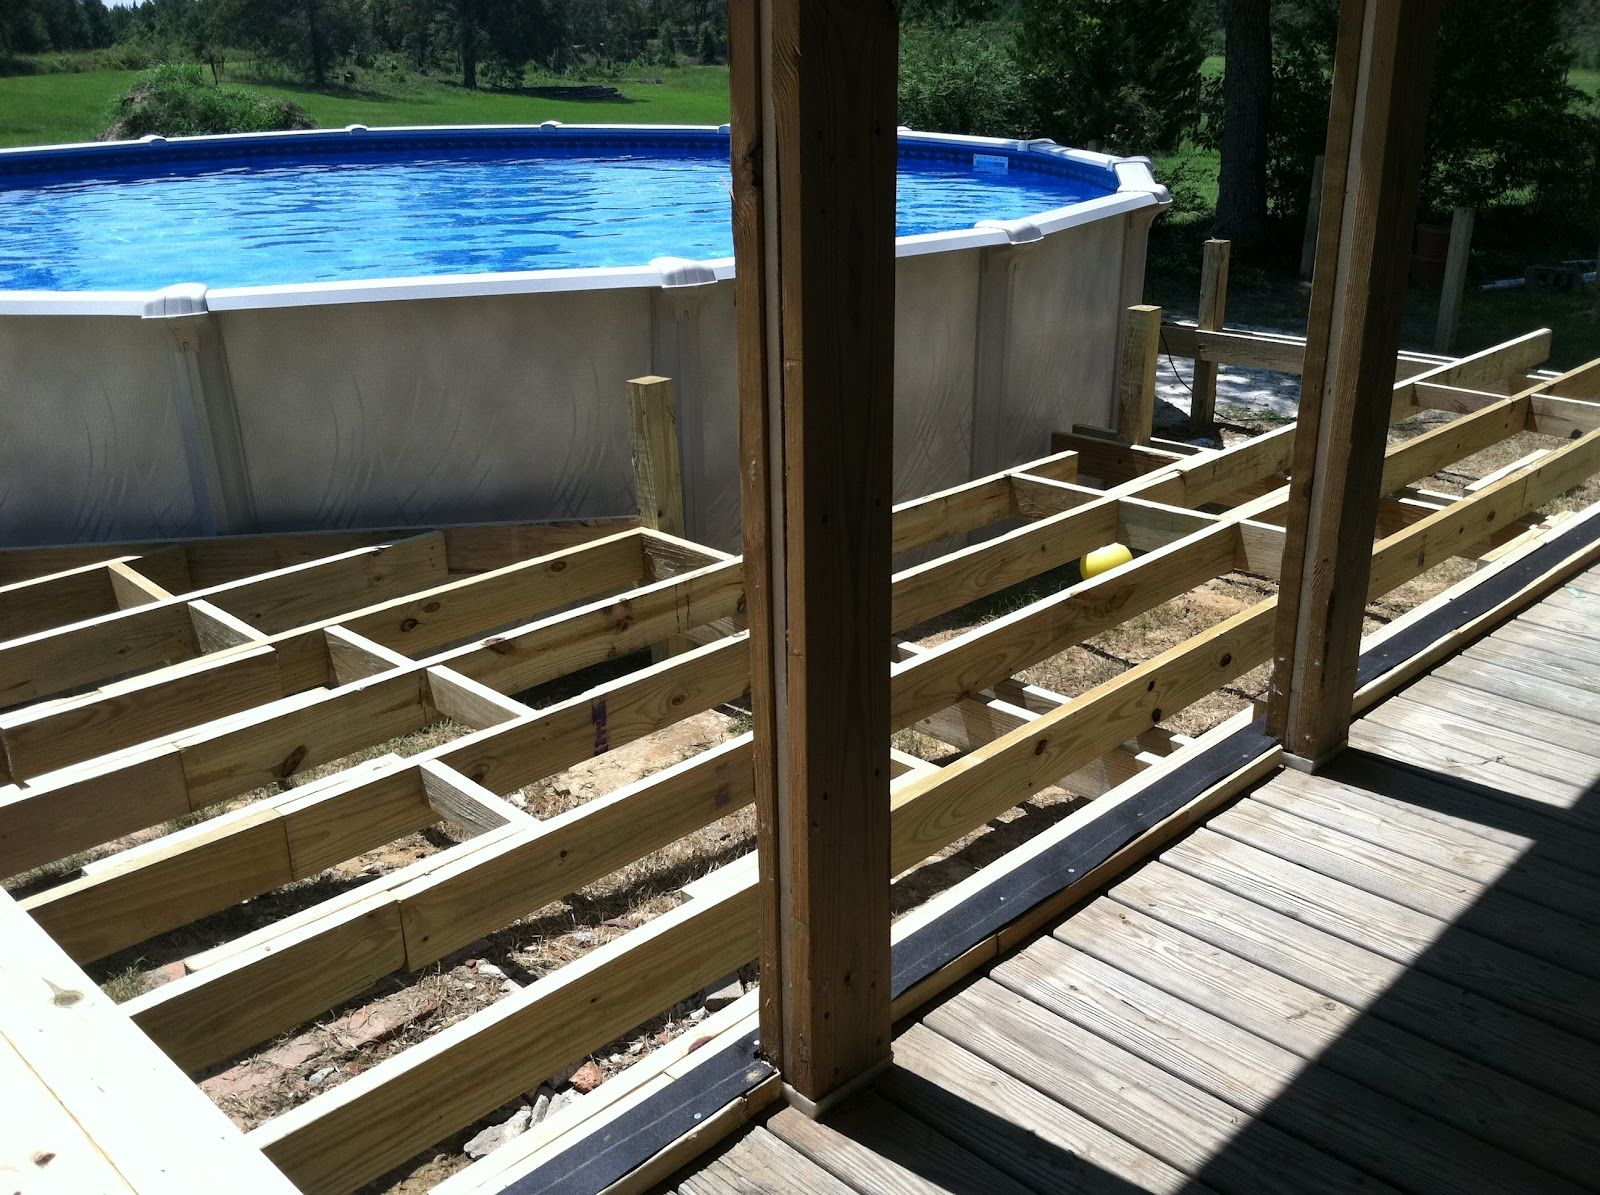 Add To Existing Deck For Pool Google Search Pool Deck Plans In Ground Pools Above Ground Pool Decks